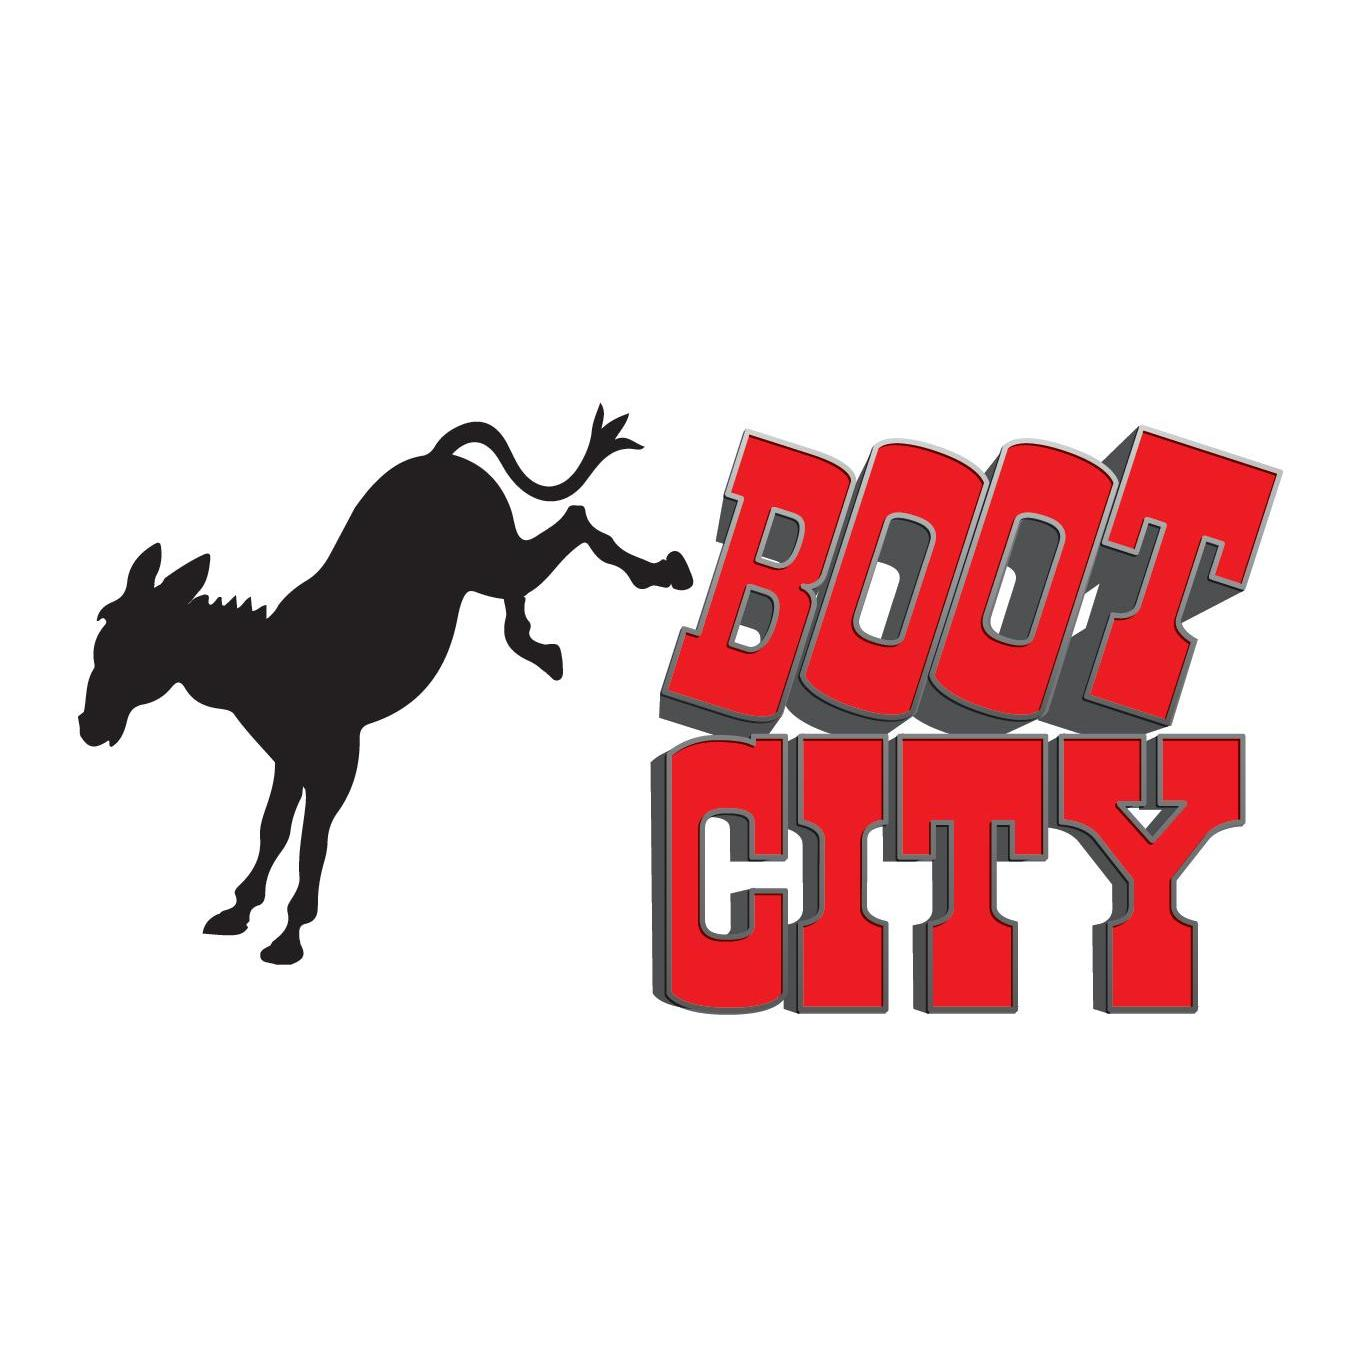 Boot City Coupons. 36 DHgate boot city coupons - instant savings! With southhe-load.tk coupons, promos & sales, you can save more money on shopping Shoes & Accessories. Enjoy free shipping and exclusive deals boot products. Save more on your favorite boot city,Boots and Sports Shoes with an exclusive payless coupons. Shop cheaper items online now.